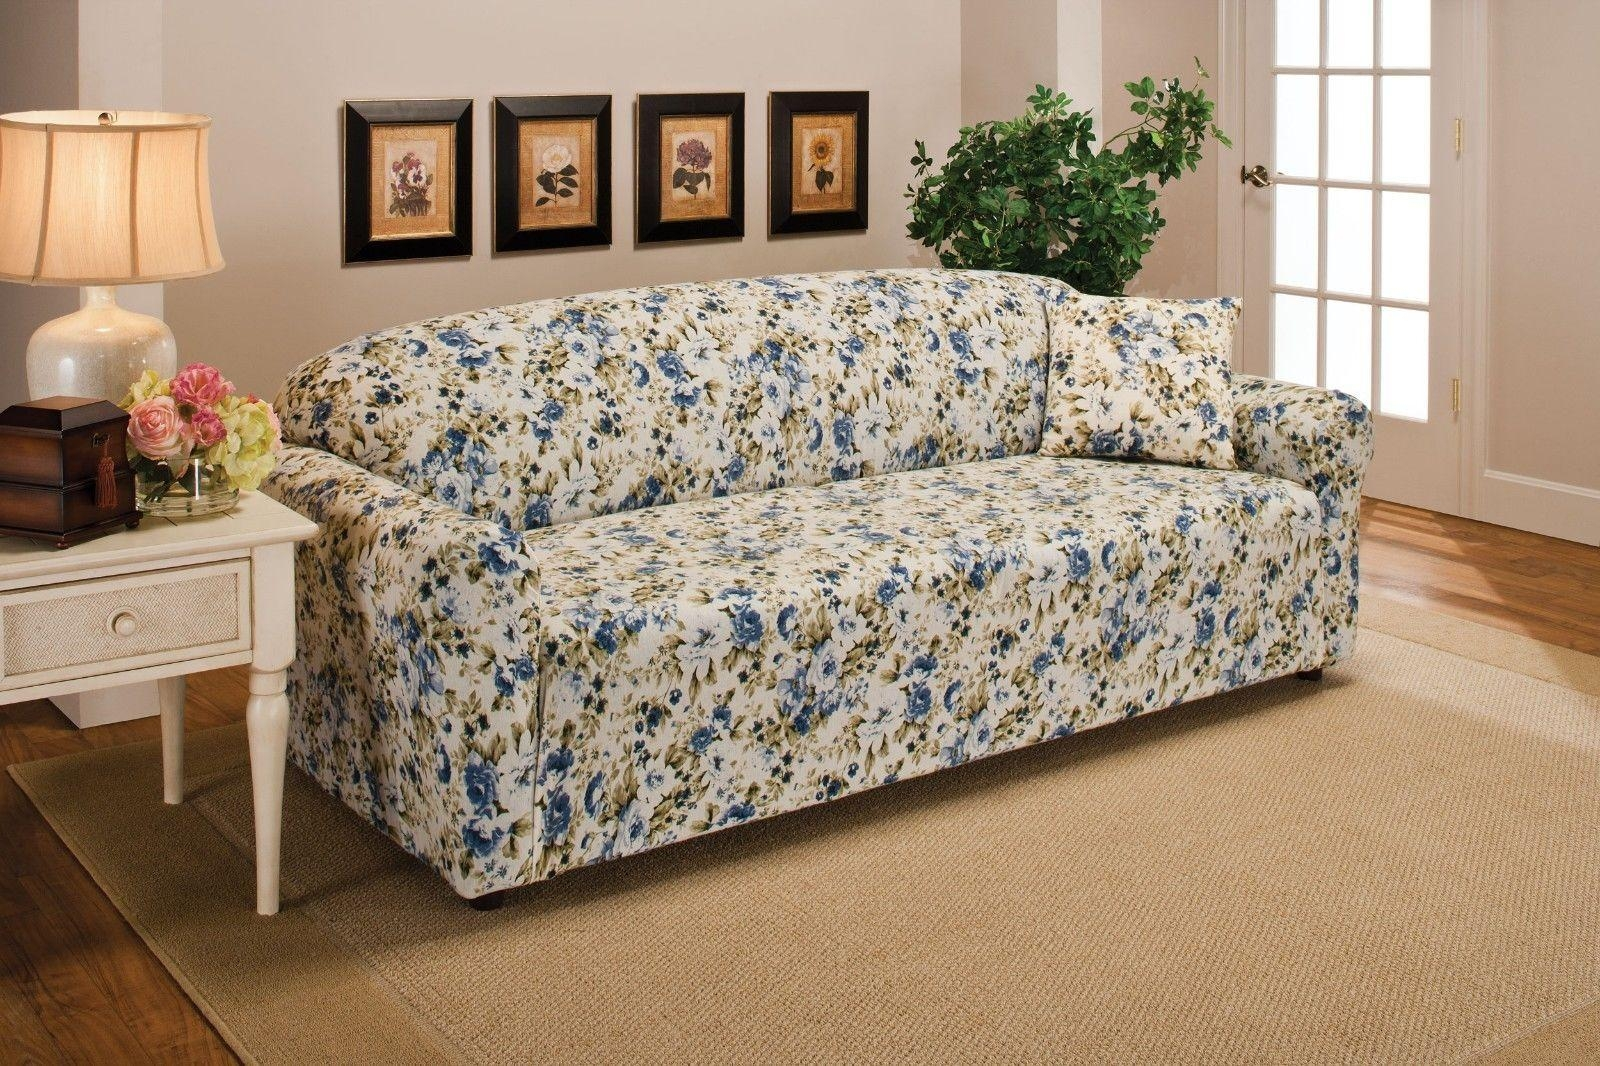 Blue Floral Flower Jersey Sofa Stretch Slipcover Couch Cover Chair Intended For Floral Sofa Slipcovers (View 6 of 20)